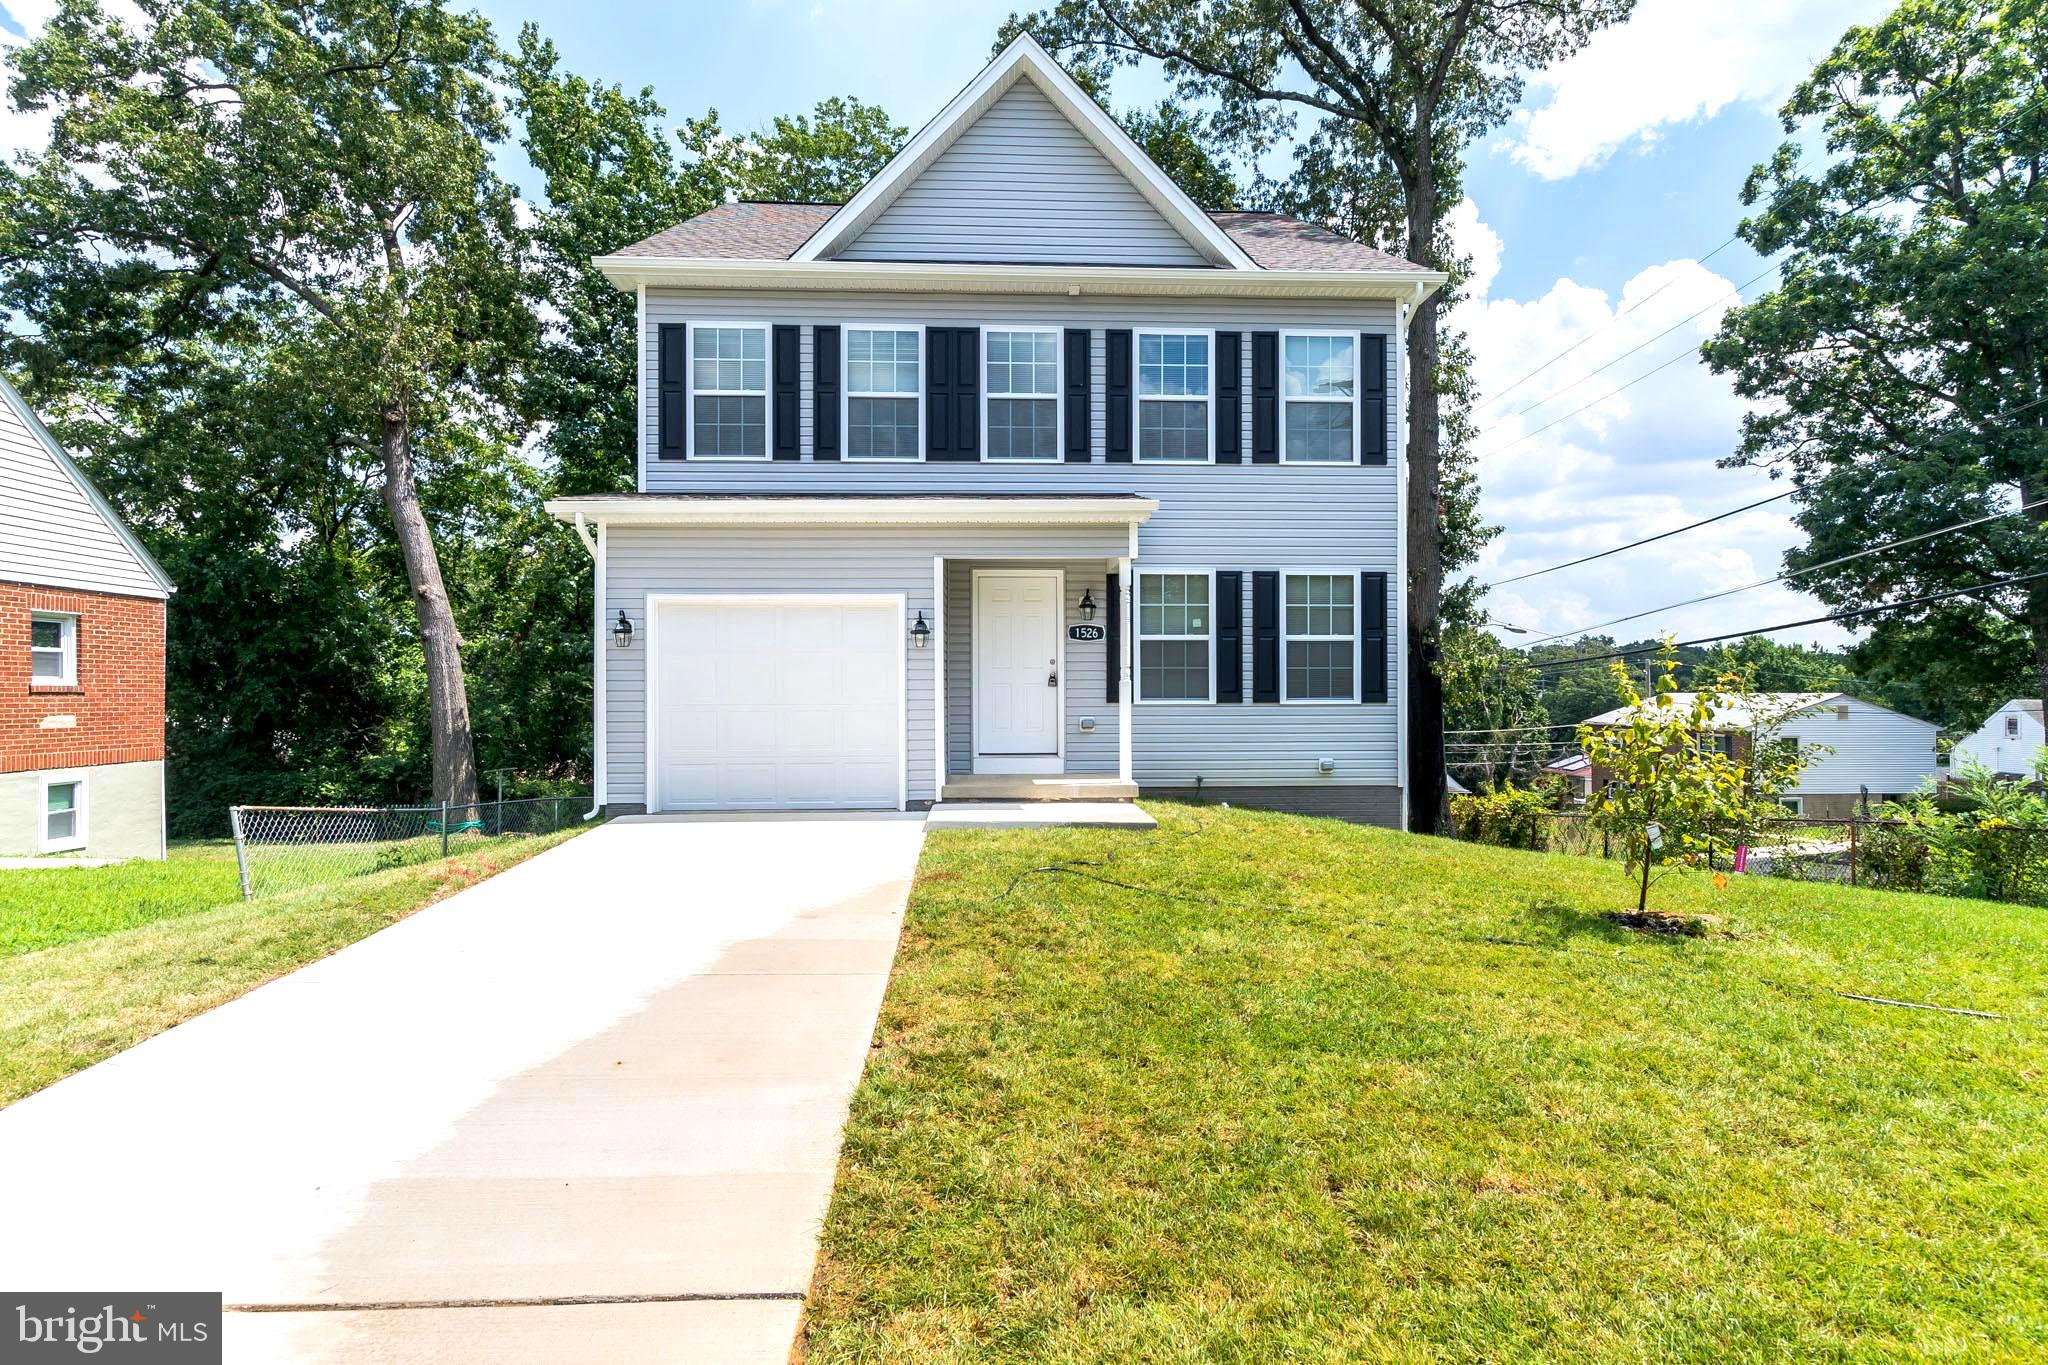 1526 PACIFIC AVENUE, CAPITOL HEIGHTS, MD 20743